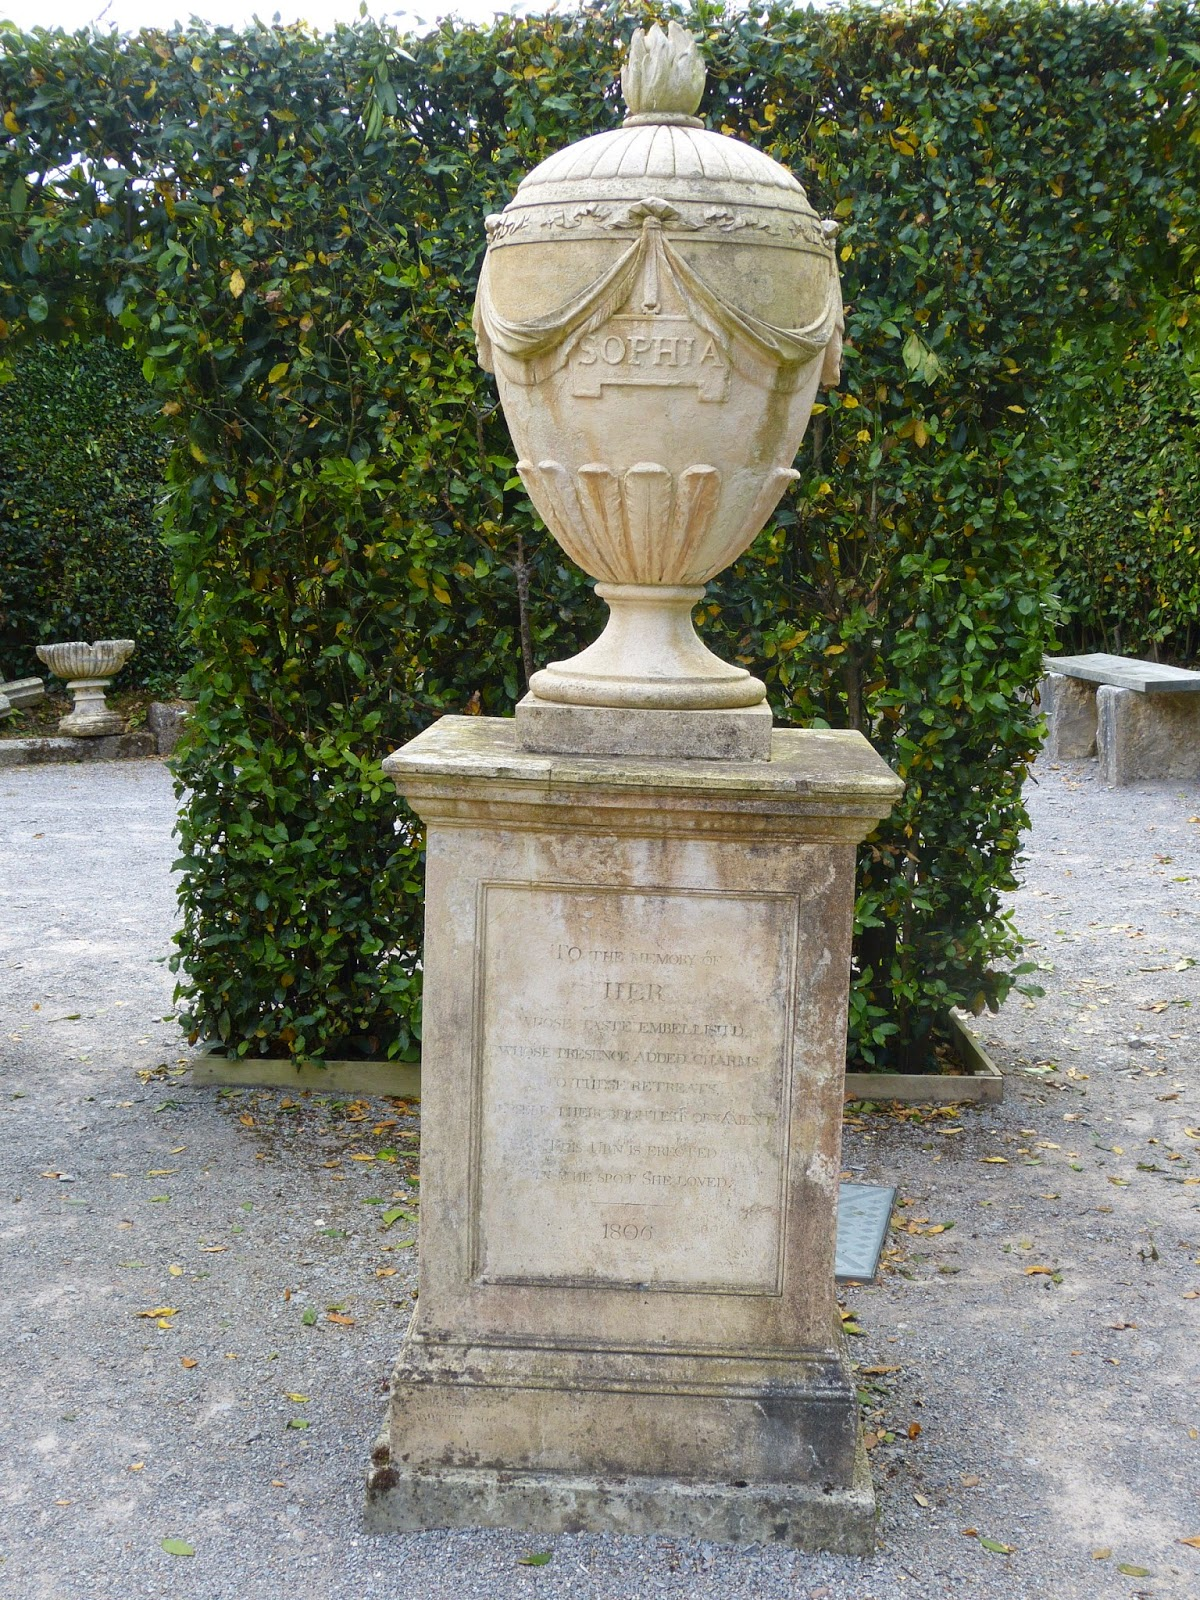 Memorial to Sophia in the French garden